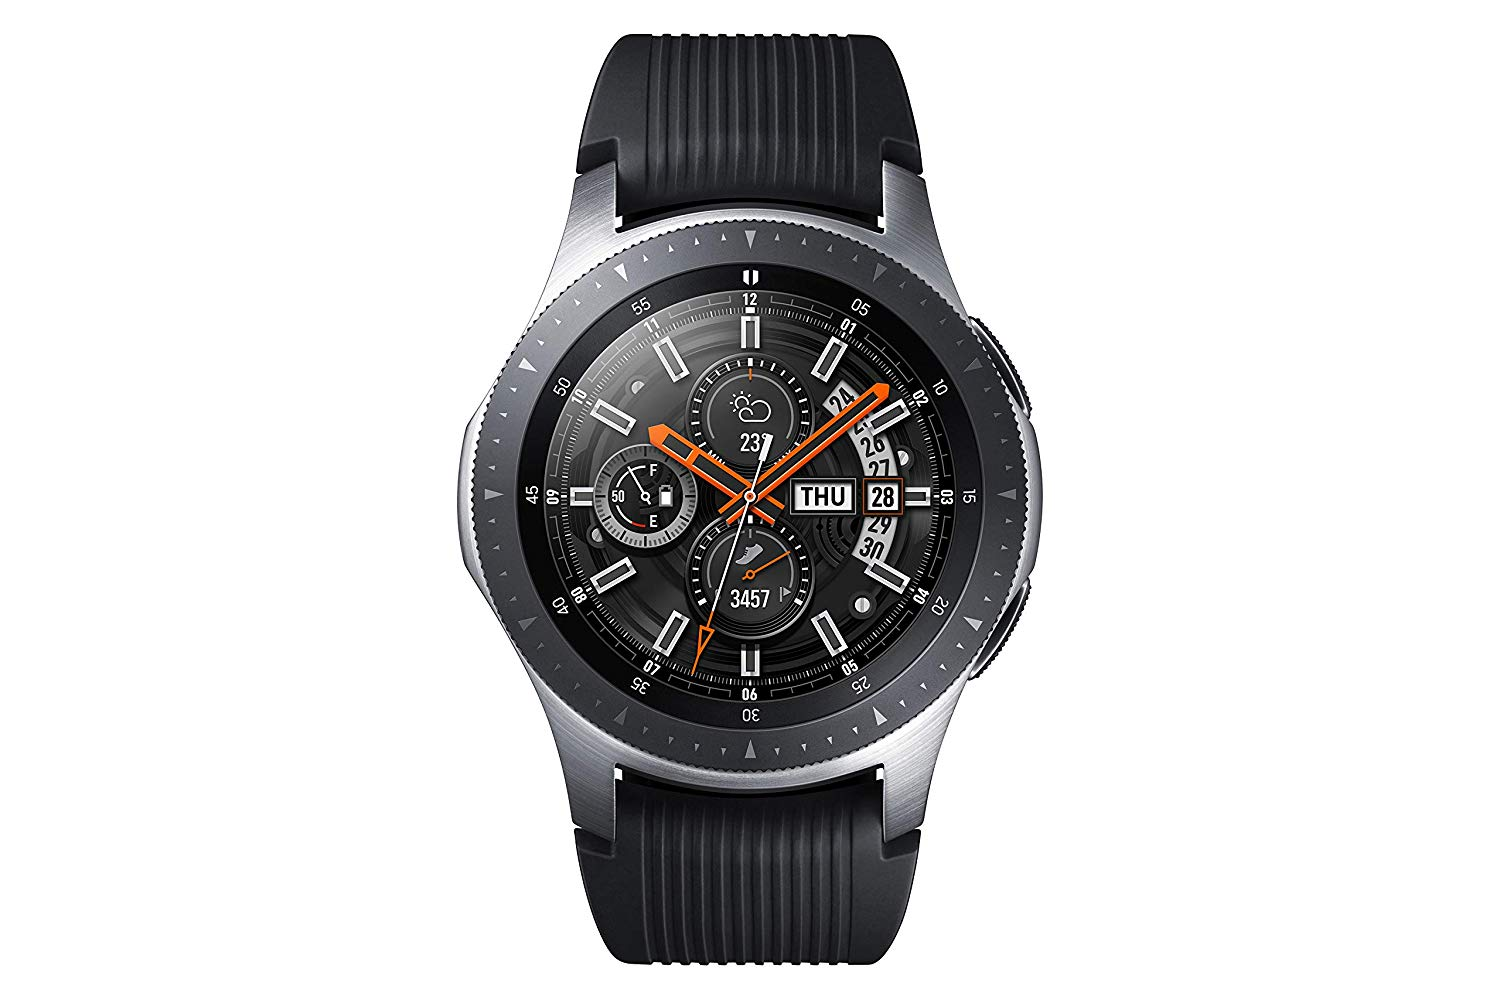 Samsung Galaxy Watch LTE amazon